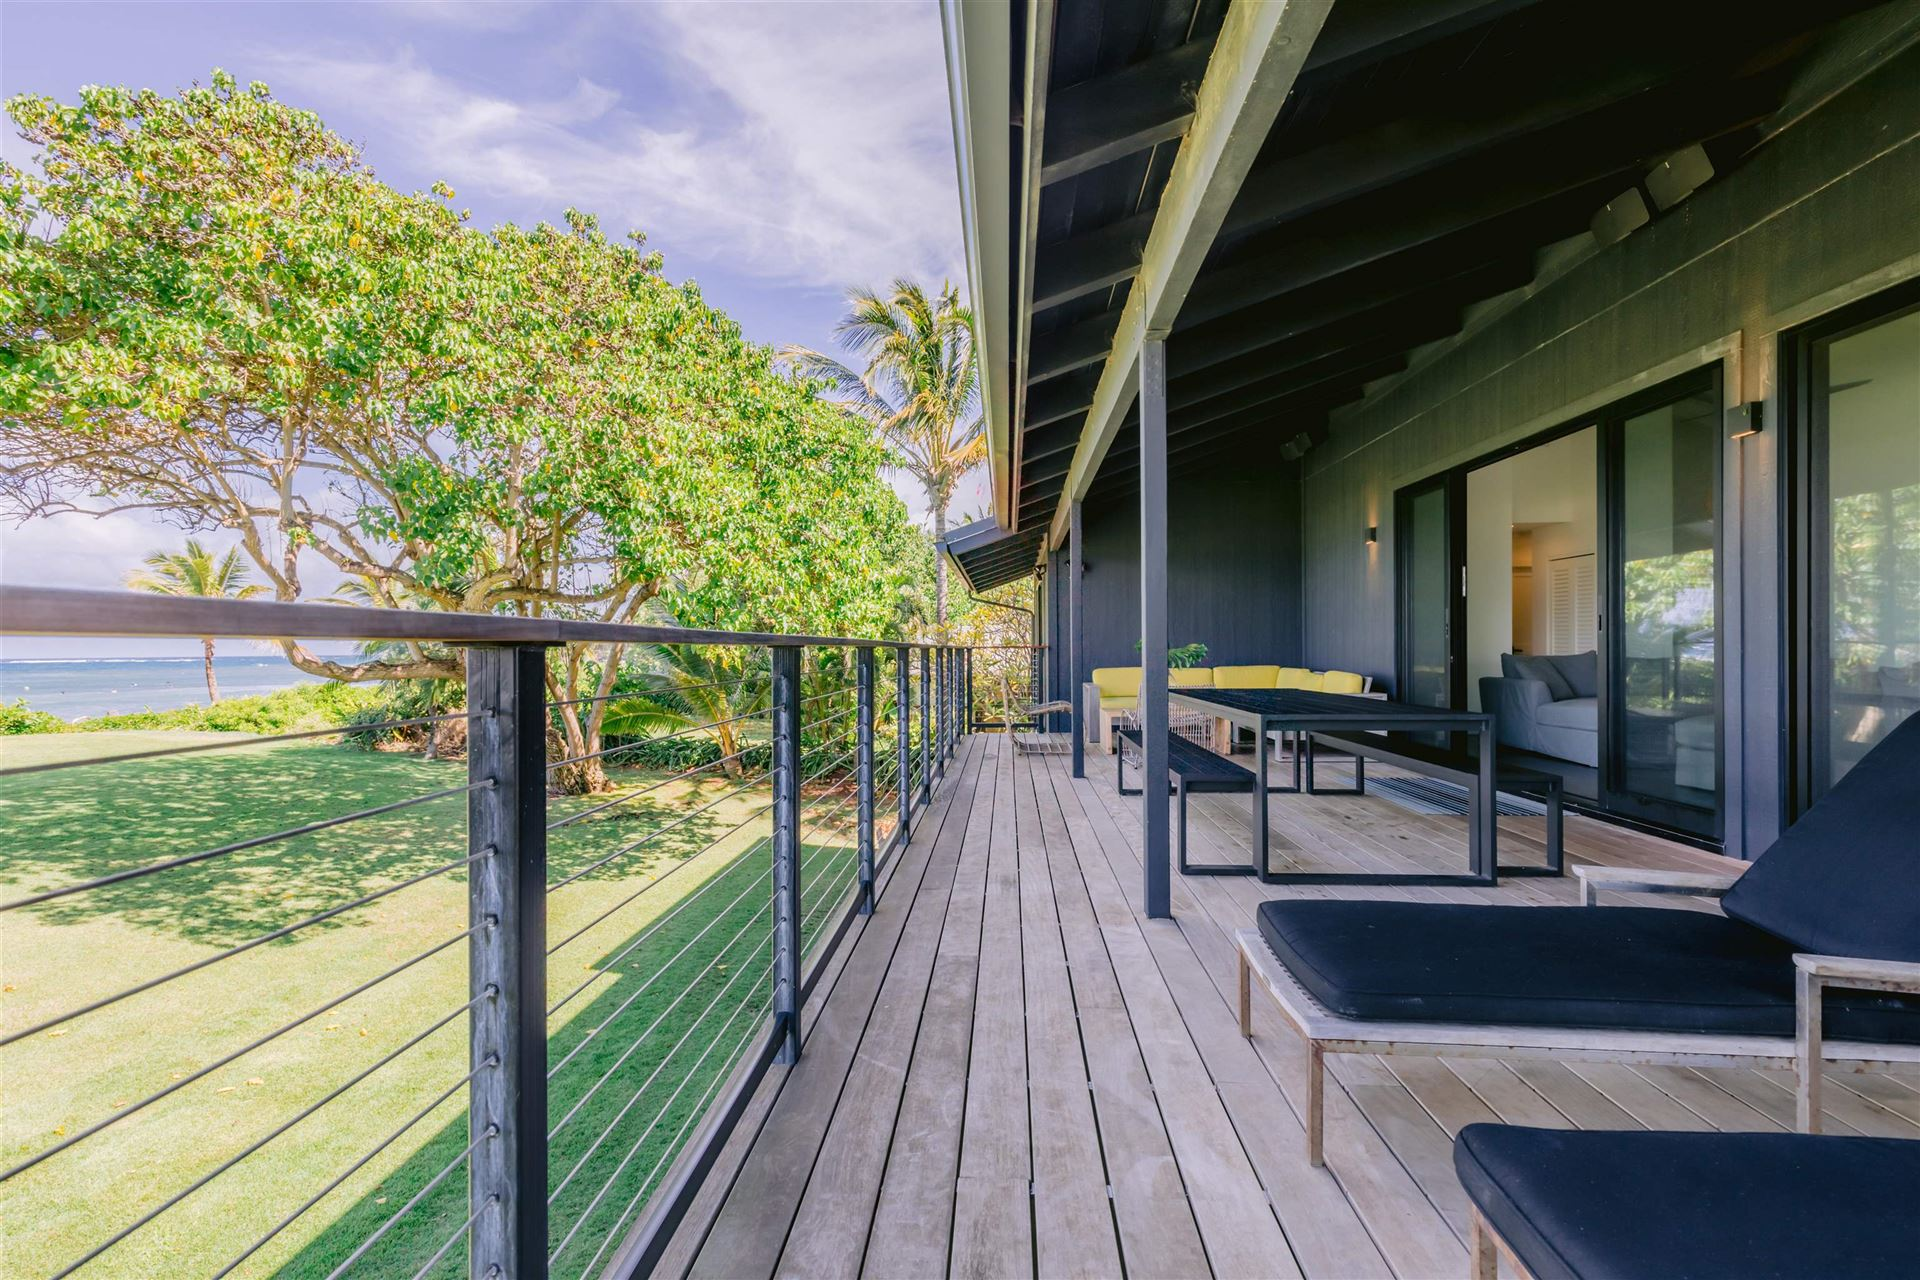 Photo of 33 Hana Hwy, Paia, HI 96779 (MLS # 390712)